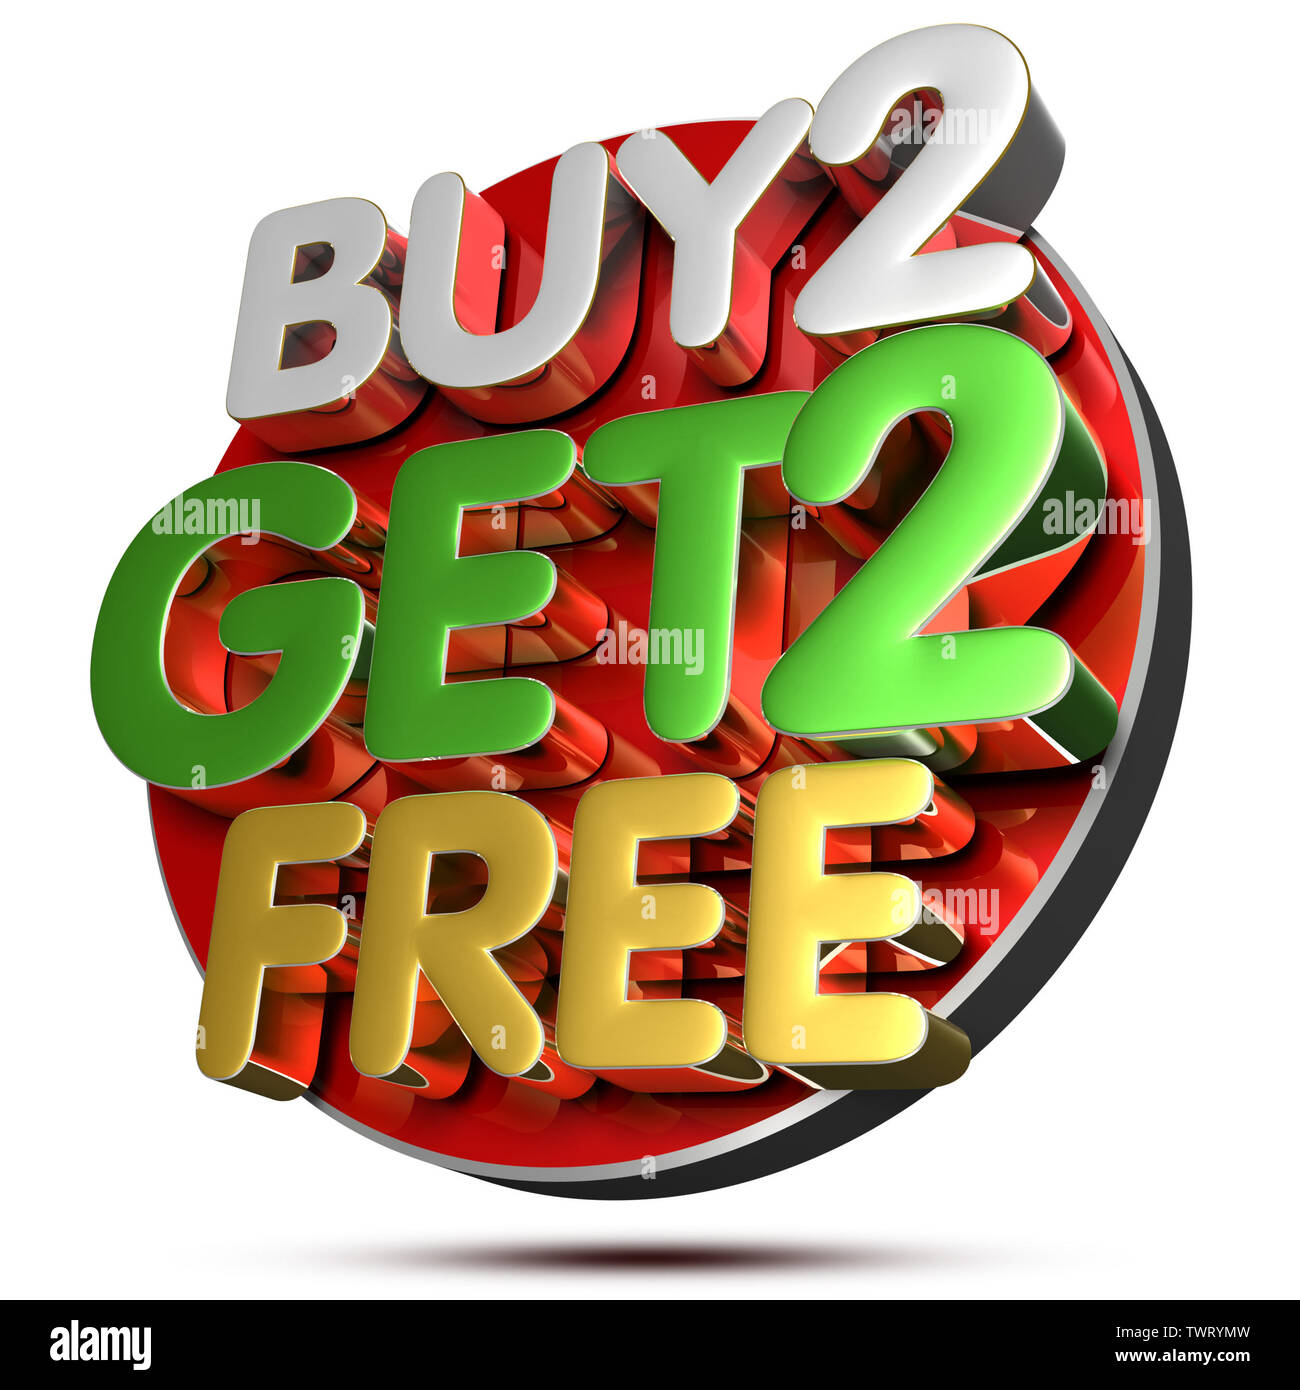 Buy One Get Free Stock Photos & Buy One Get Free Stock Images - Alamy